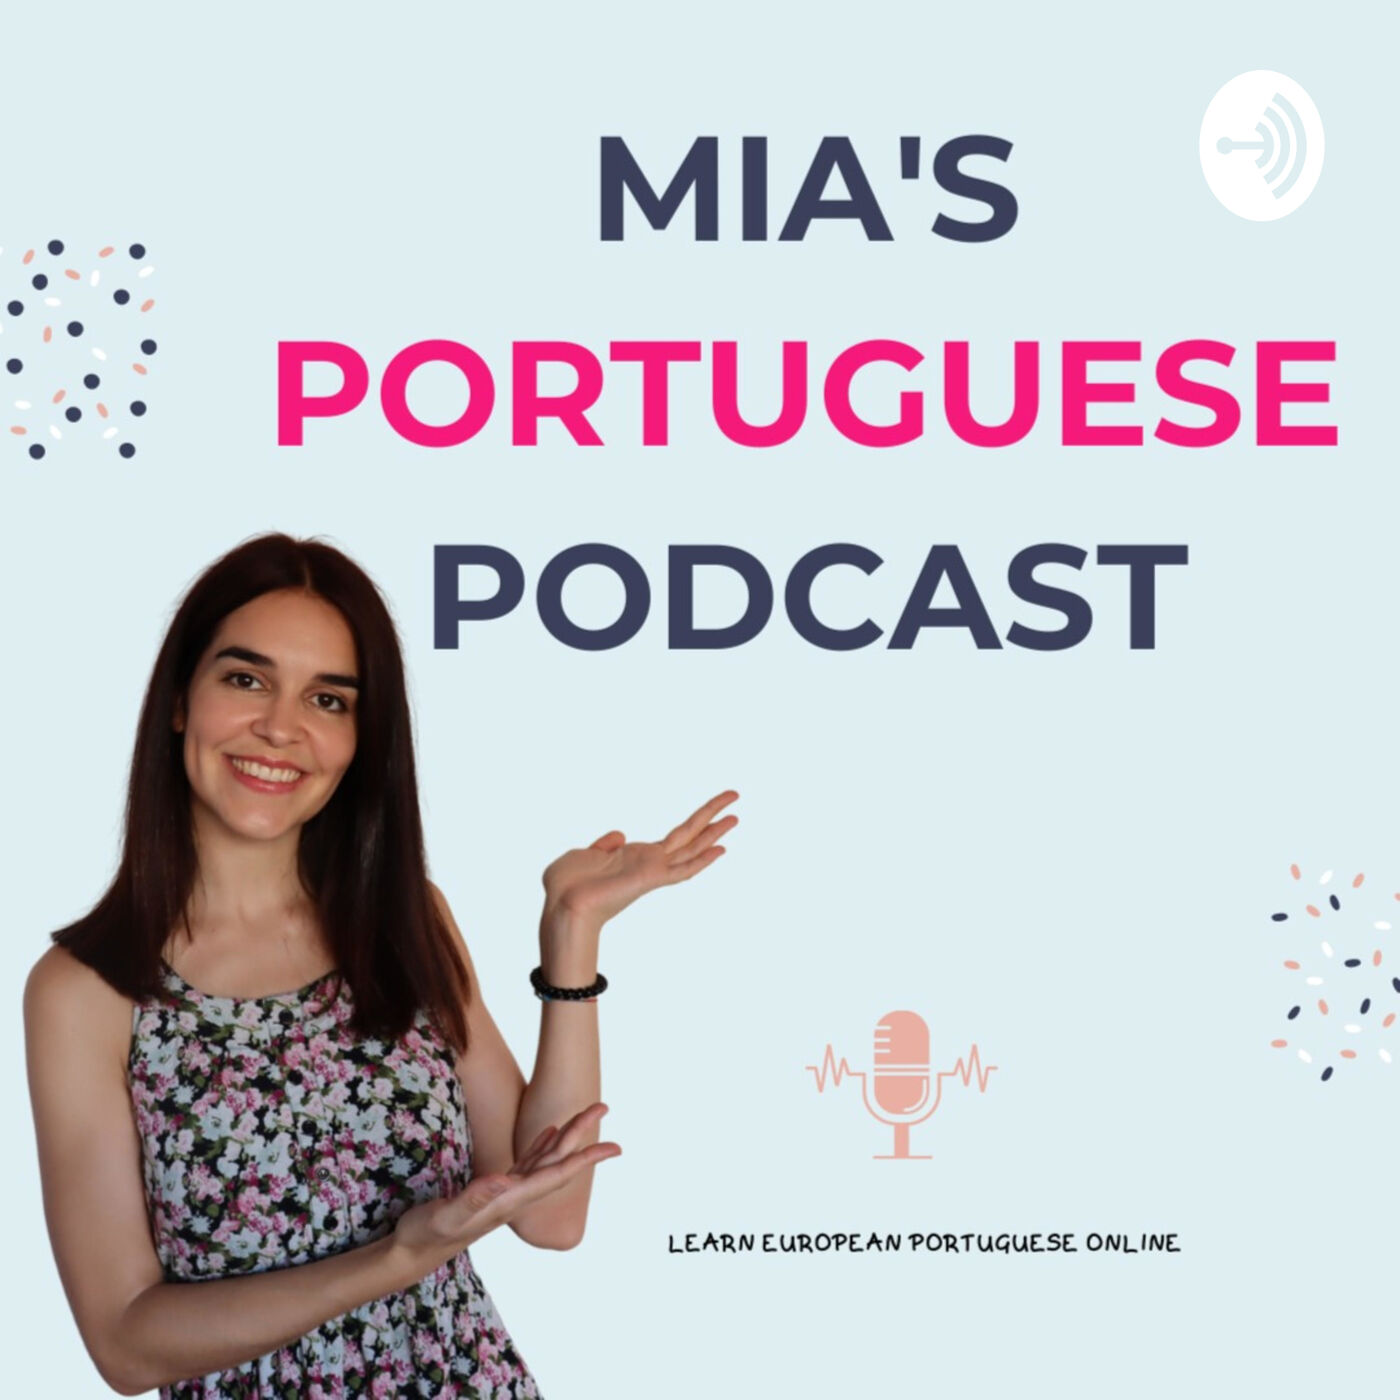 Mia's Portuguese Podcast 10 - A sad event, the situation in Portugal and a future course